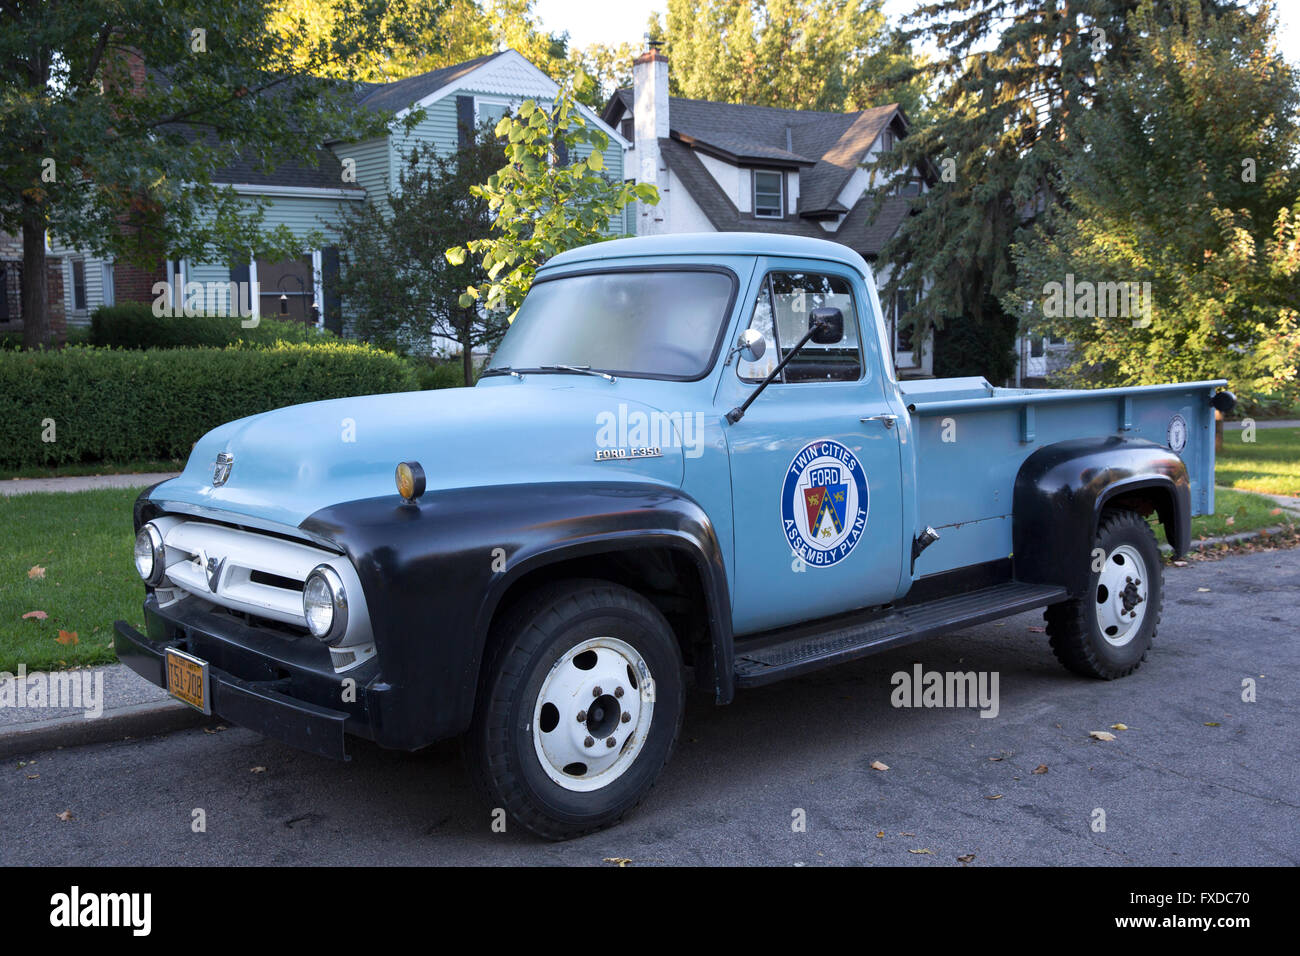 A classic 1953 Ford F-350 pickup truck with a Twin Cities Ford Assembly Plant decal on the side - Stock Image